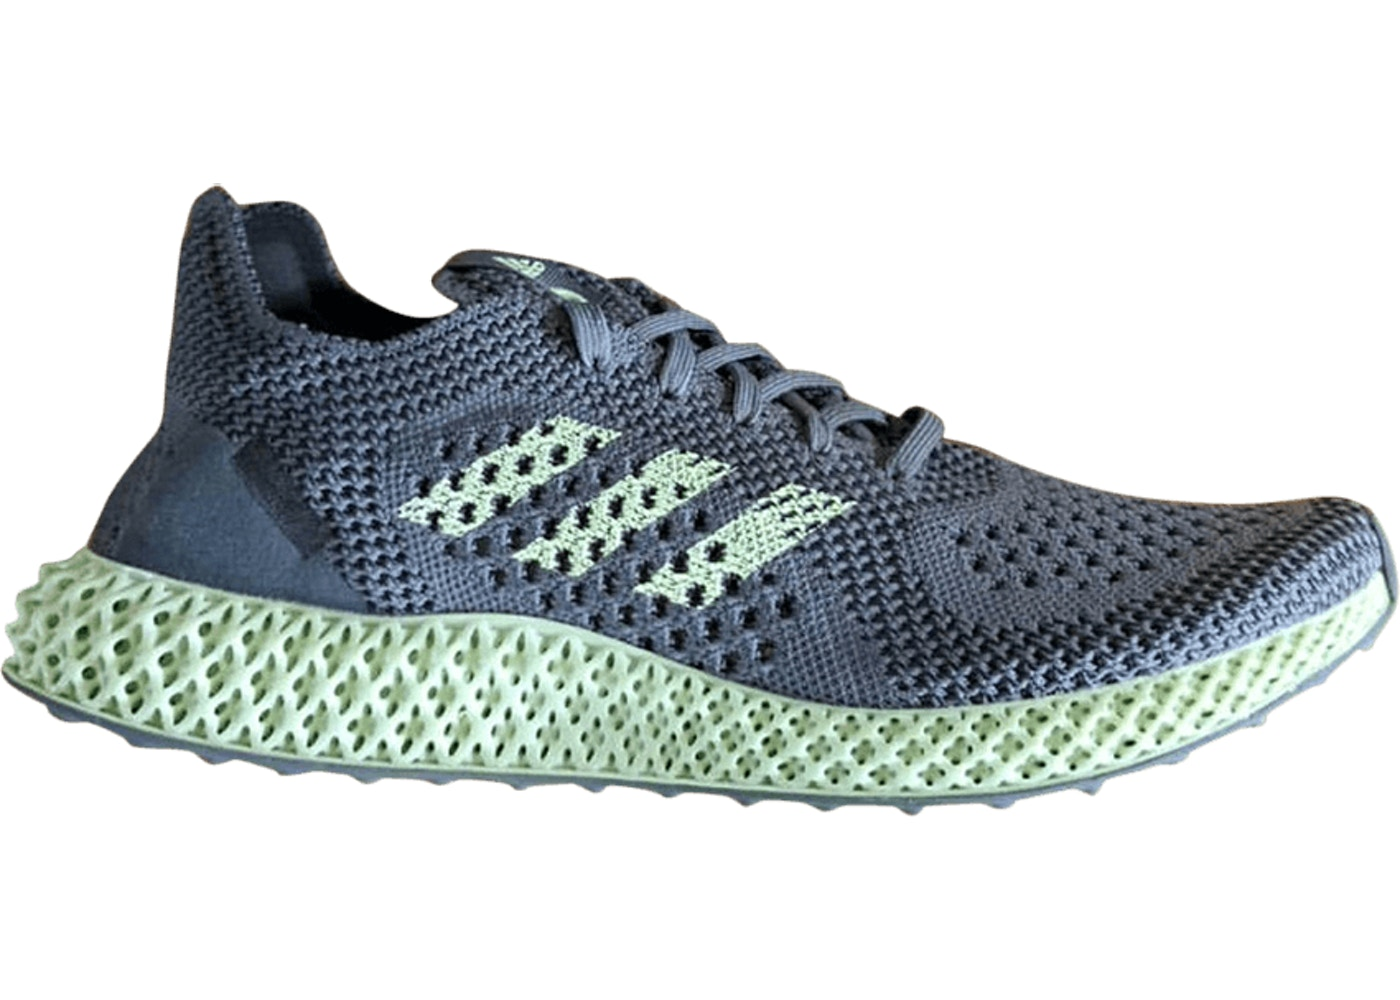 new arrival 4efaa bc7e3 adidas Futurecraft 4D Friends & Family